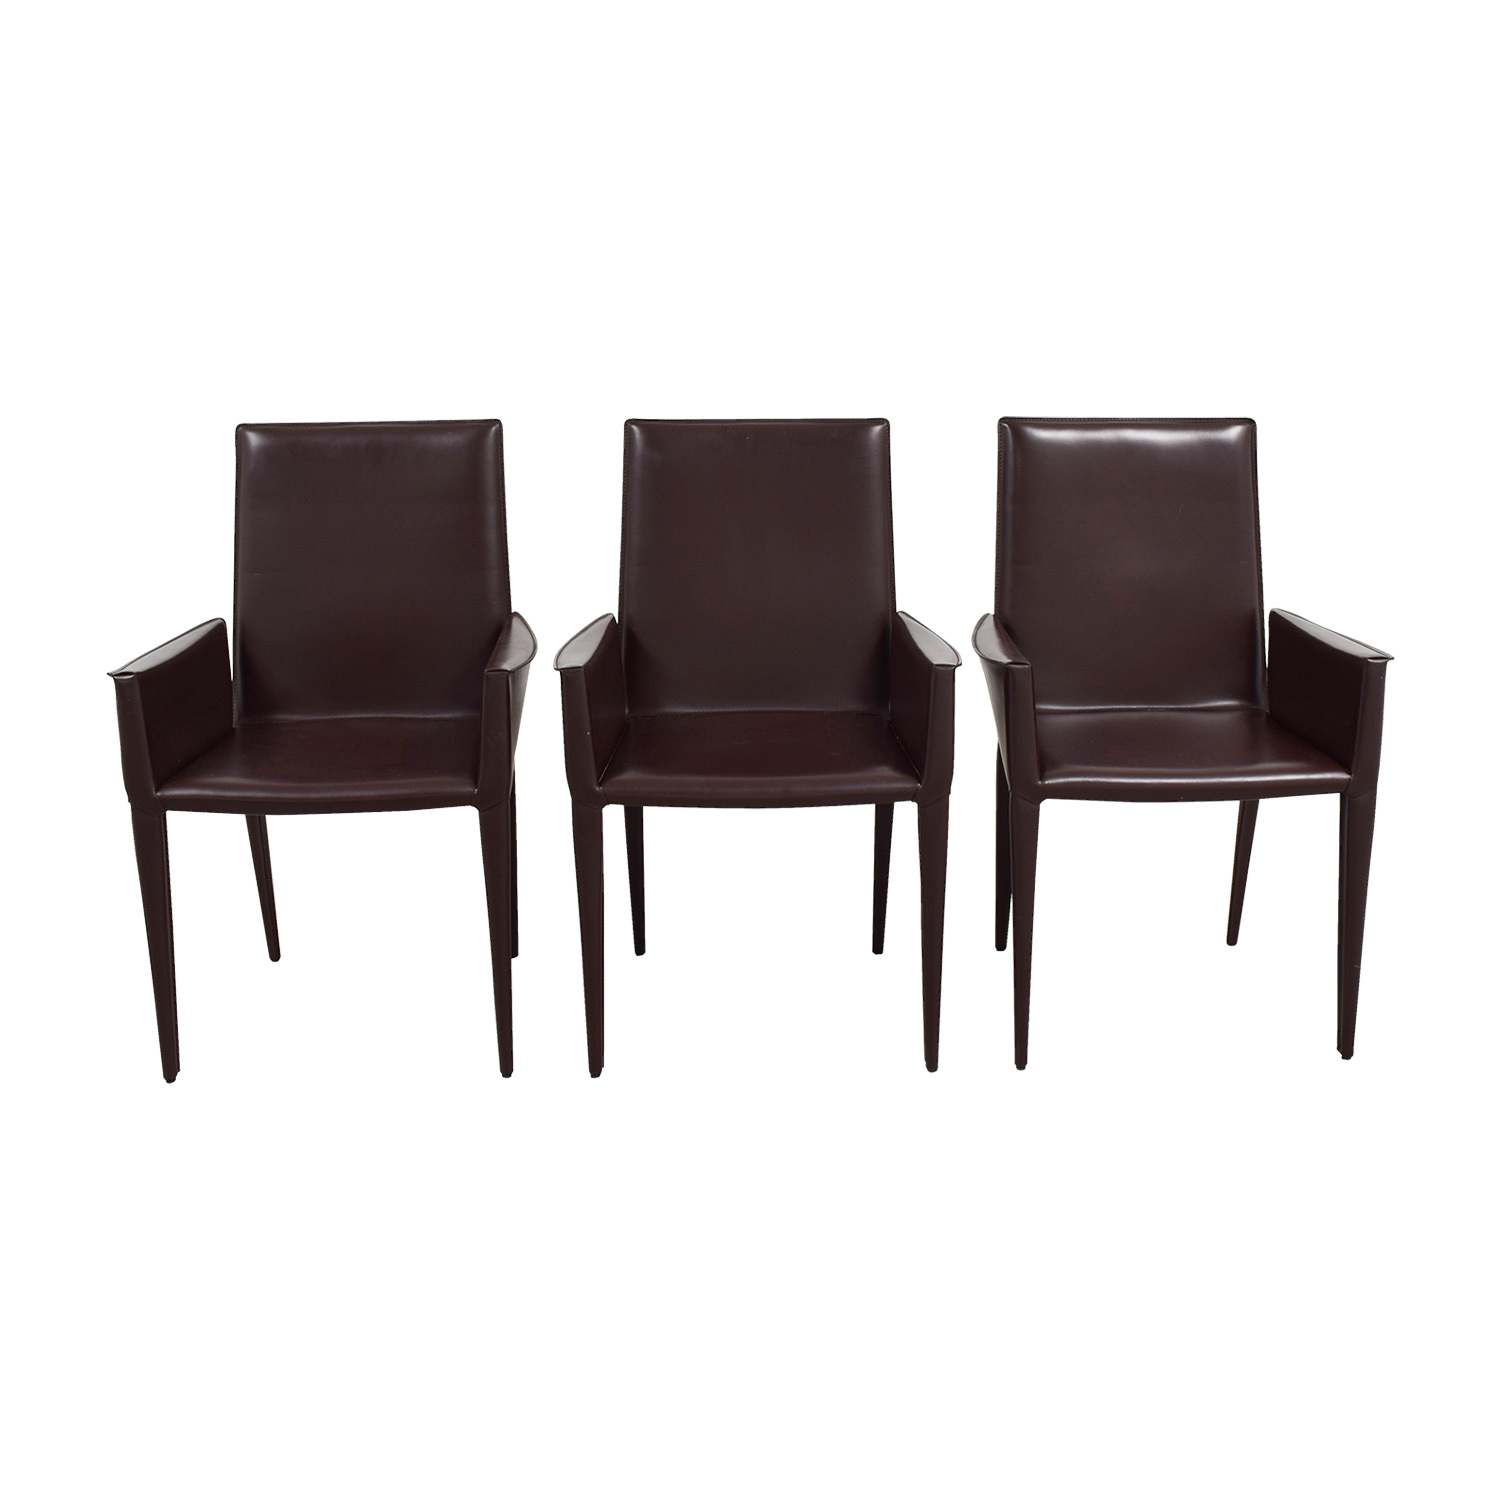 CB2 CB2 Brown Arm Chairs